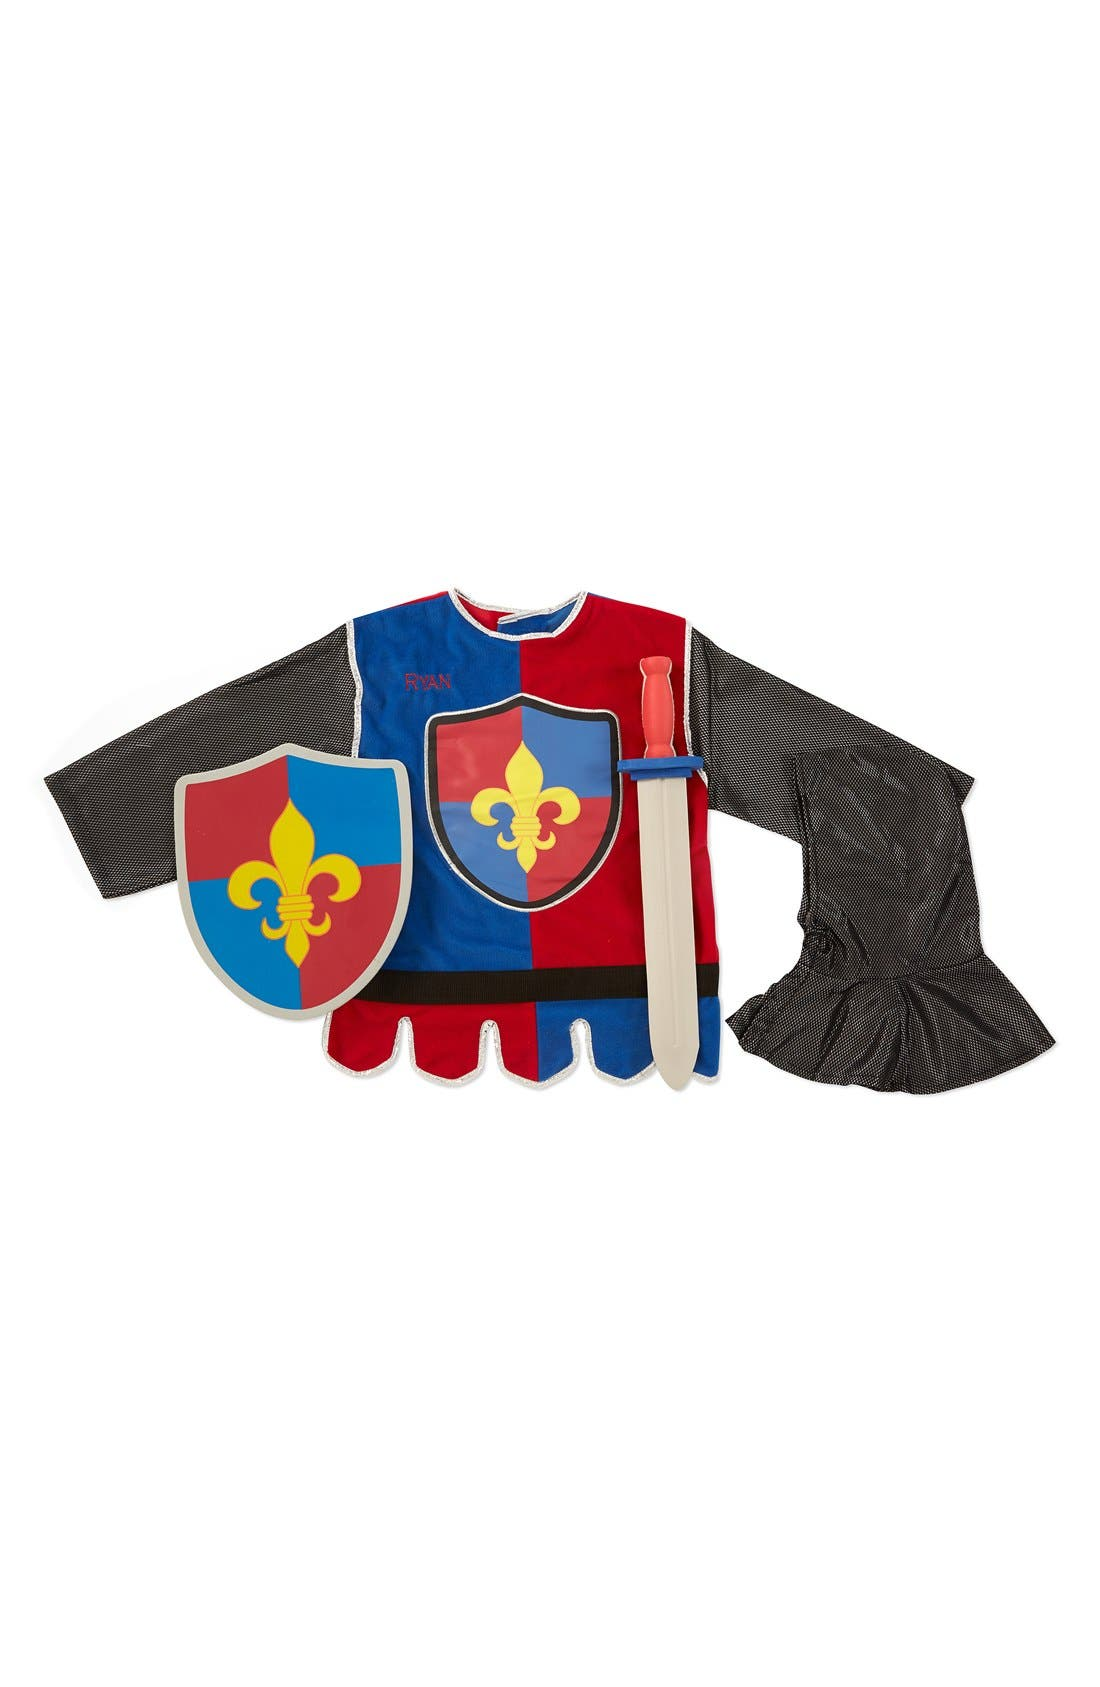 'Knight' Personalized Costume Set,                         Main,                         color, 600